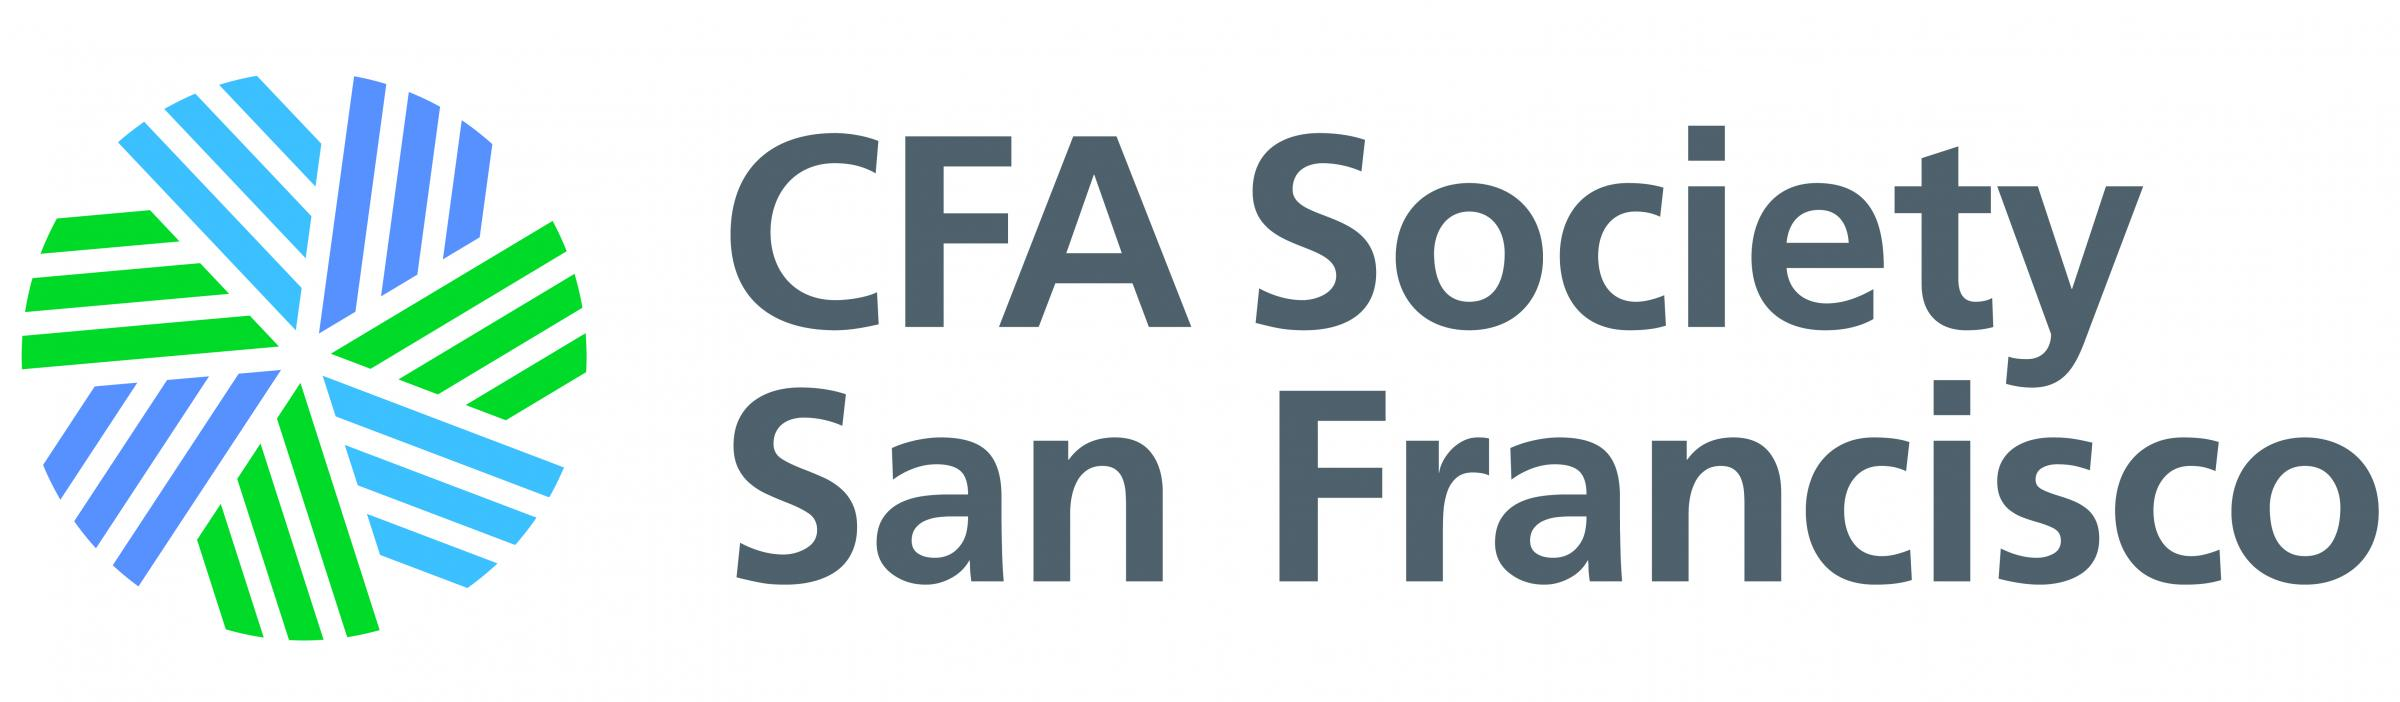 CFA Society San Francisco